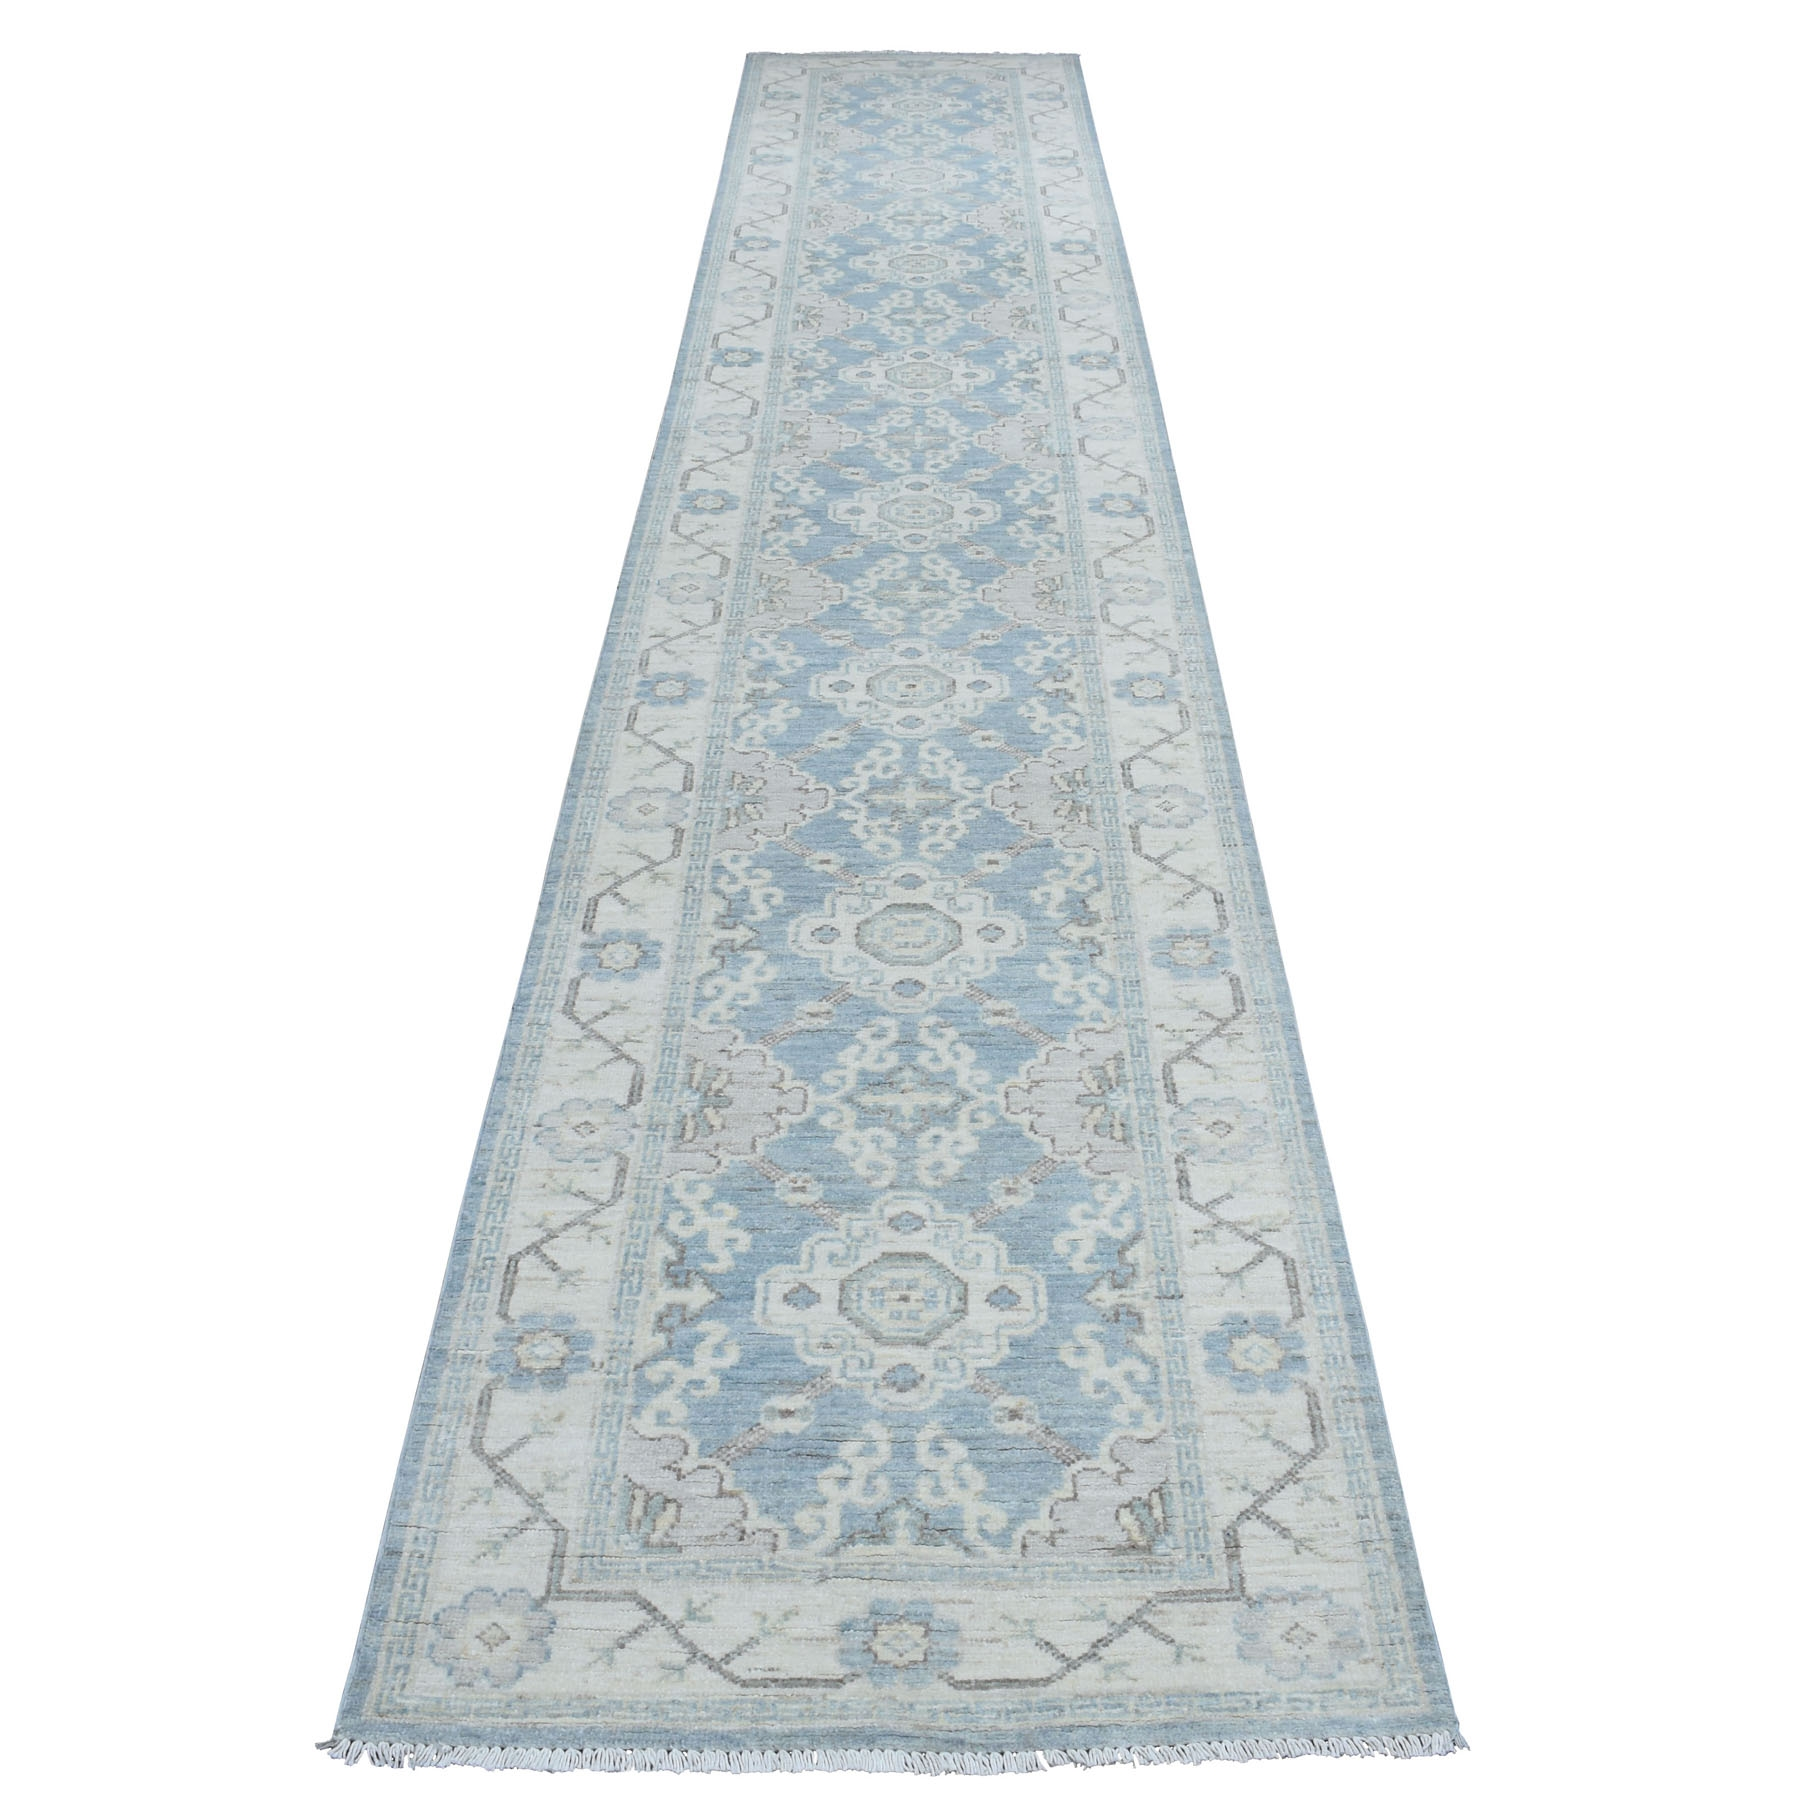 "2'8""X14'7"" White Wash Peshawar Pure Wool Khotan Design Hand Knotted Xl Runner Oriental Rug moaed0bb"